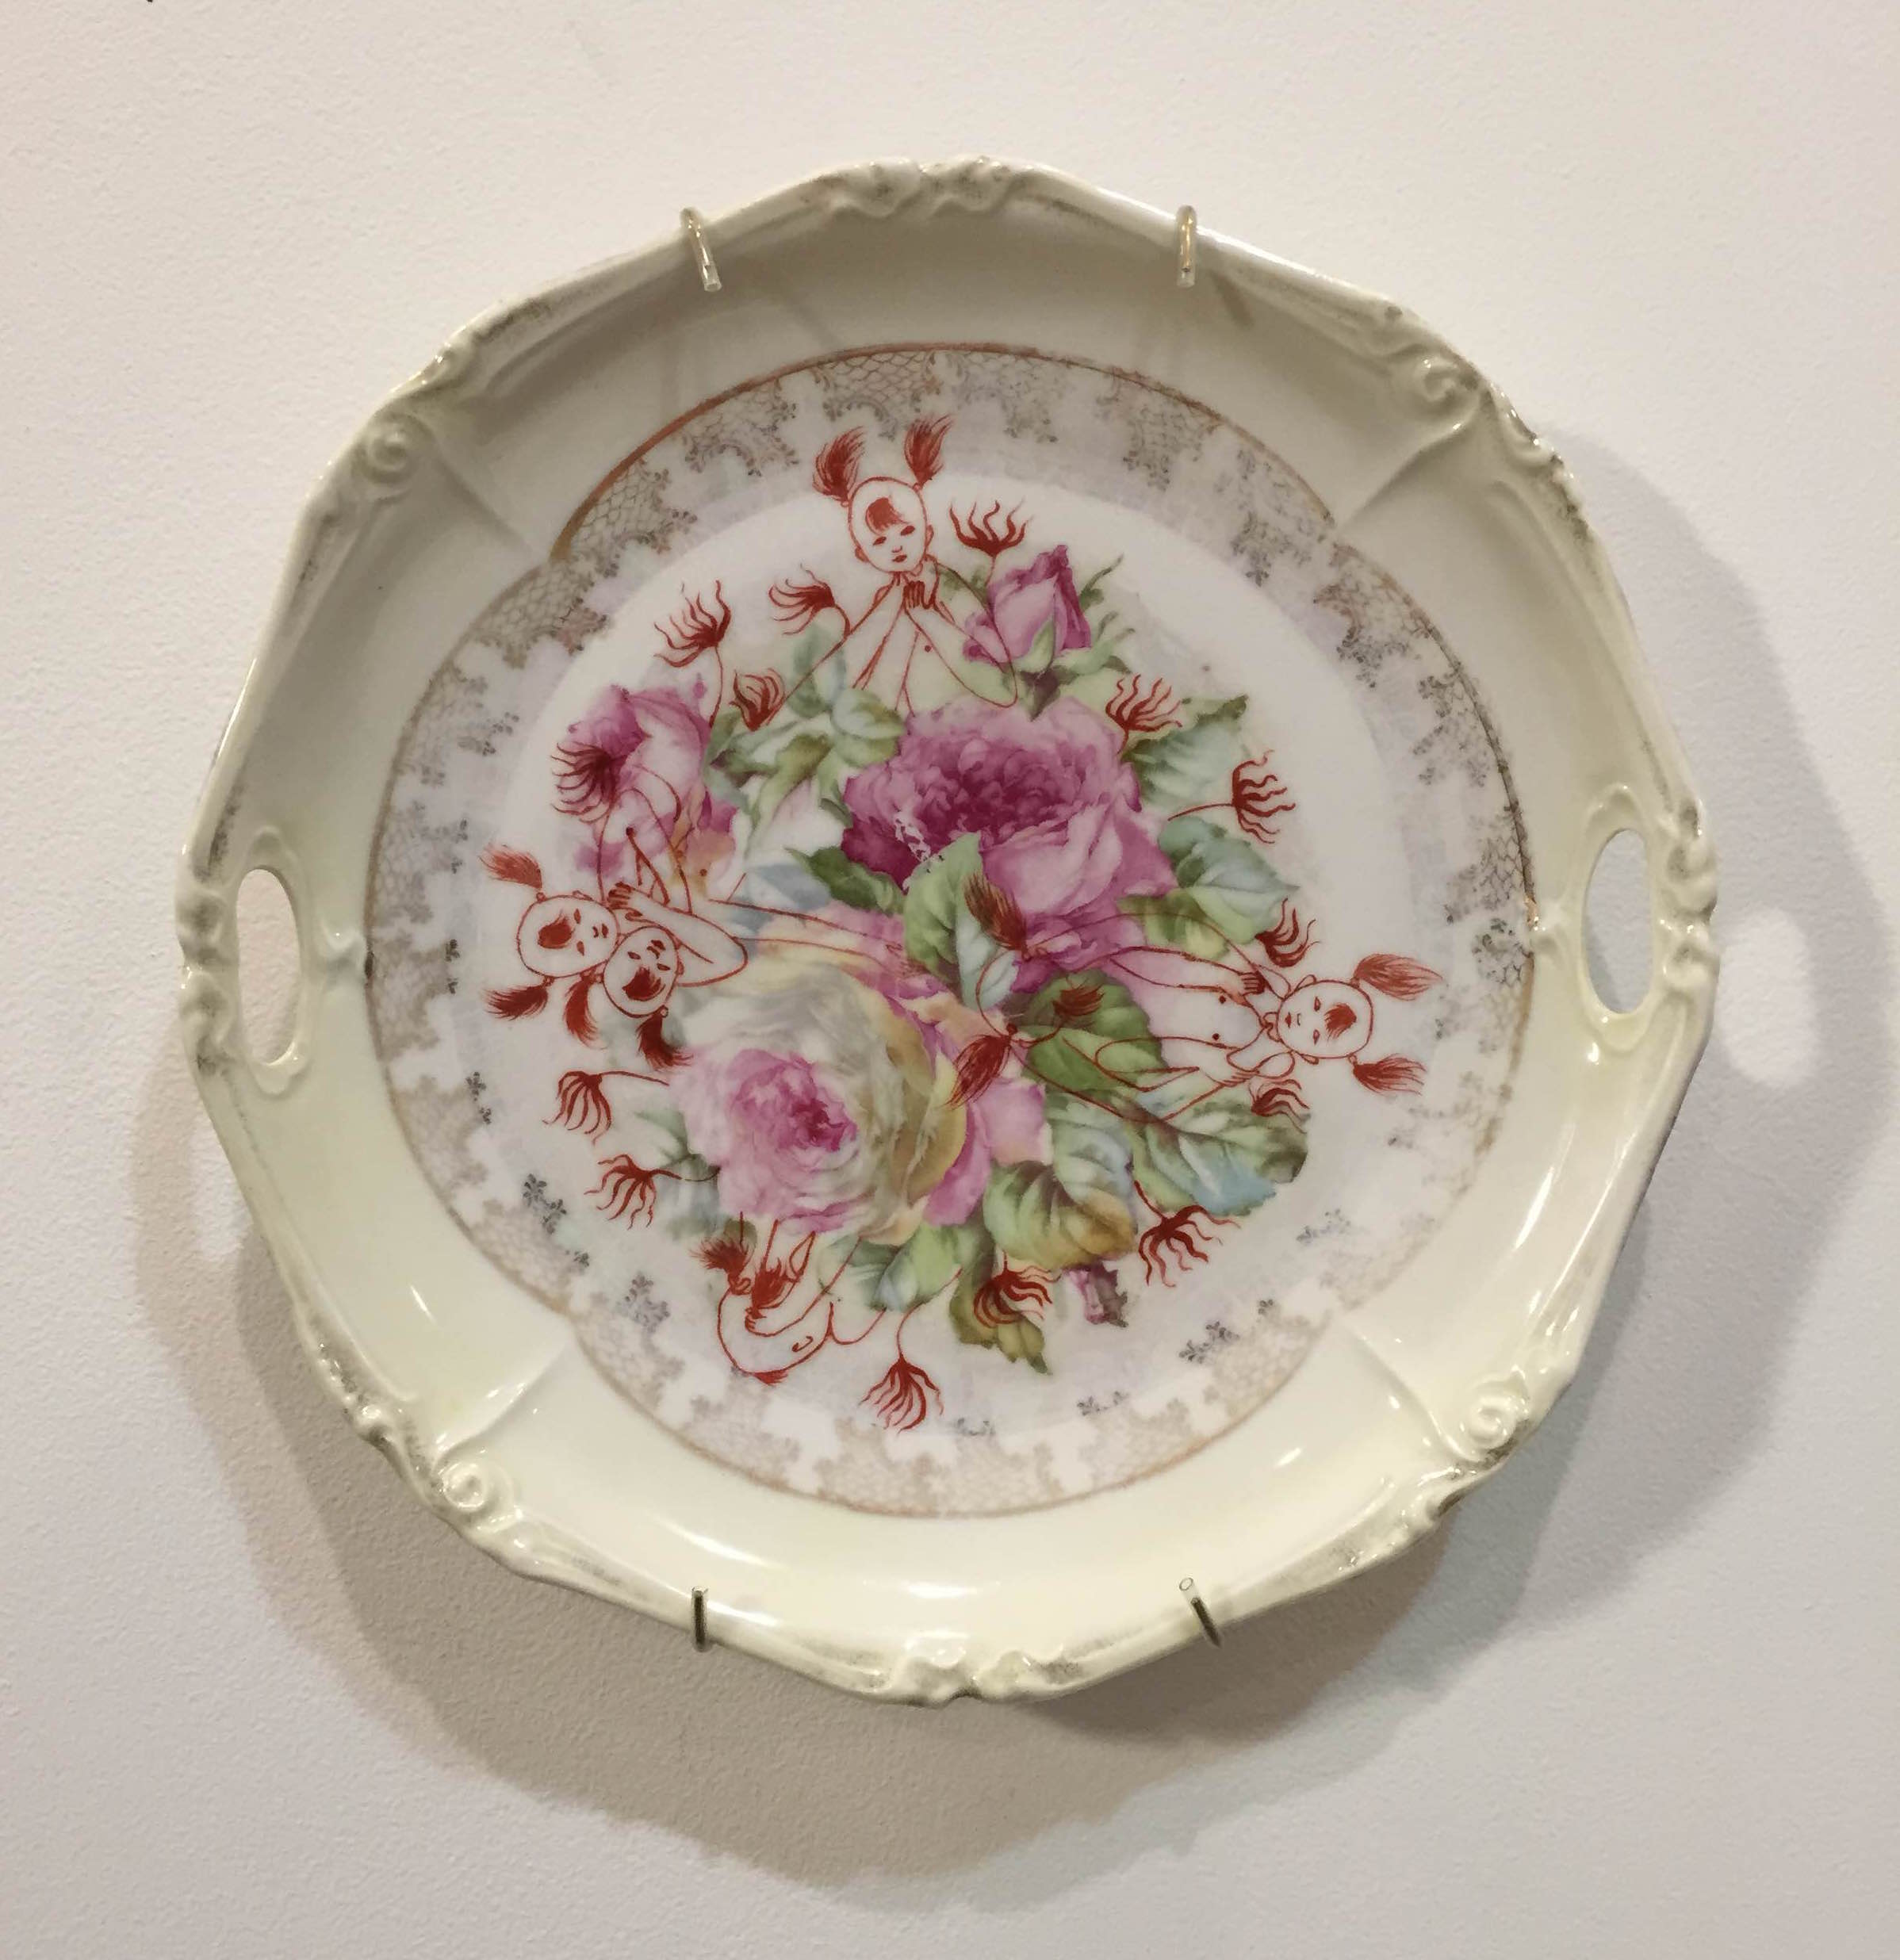 """Cathy Lu   Untitled,  2015  china painting on found plate  9.5"""" x 9.5"""" x 1.5"""""""